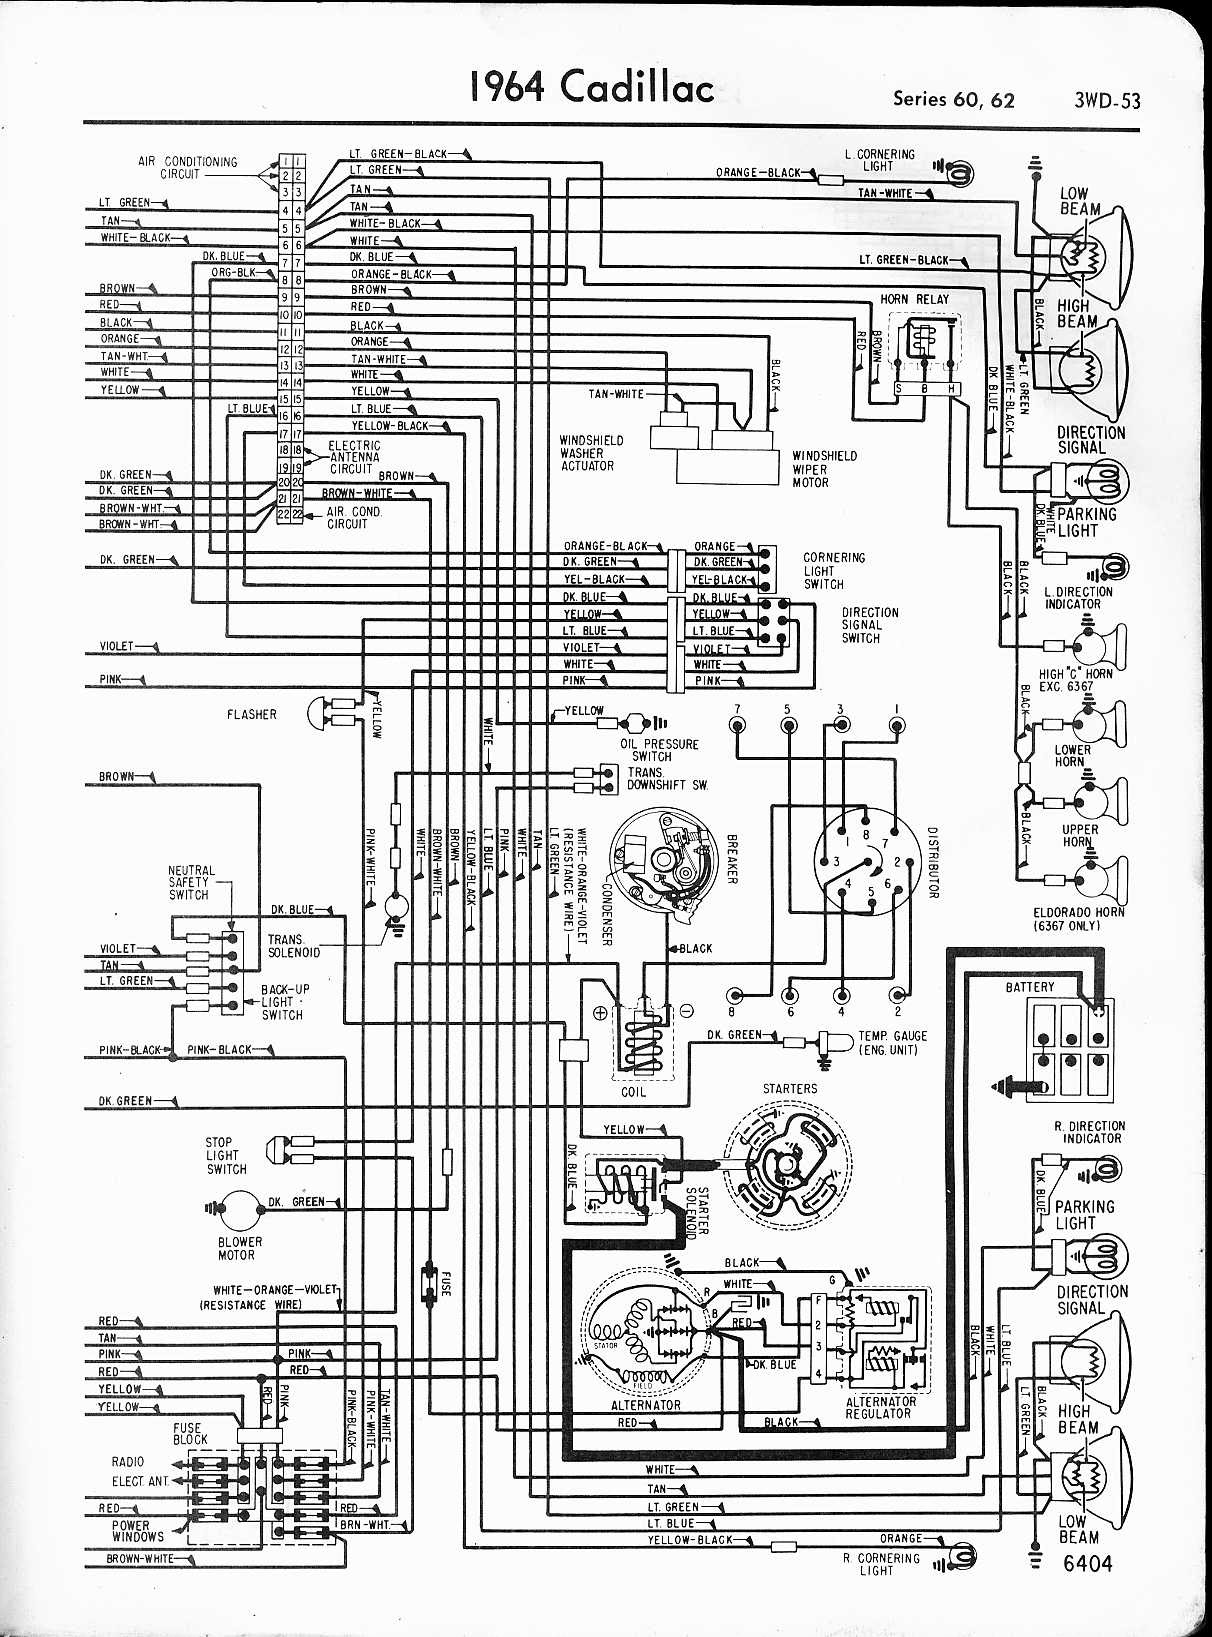 1969 Cadillac Wiring Diagram Wiring Diagram Local A Local A Maceratadoc It